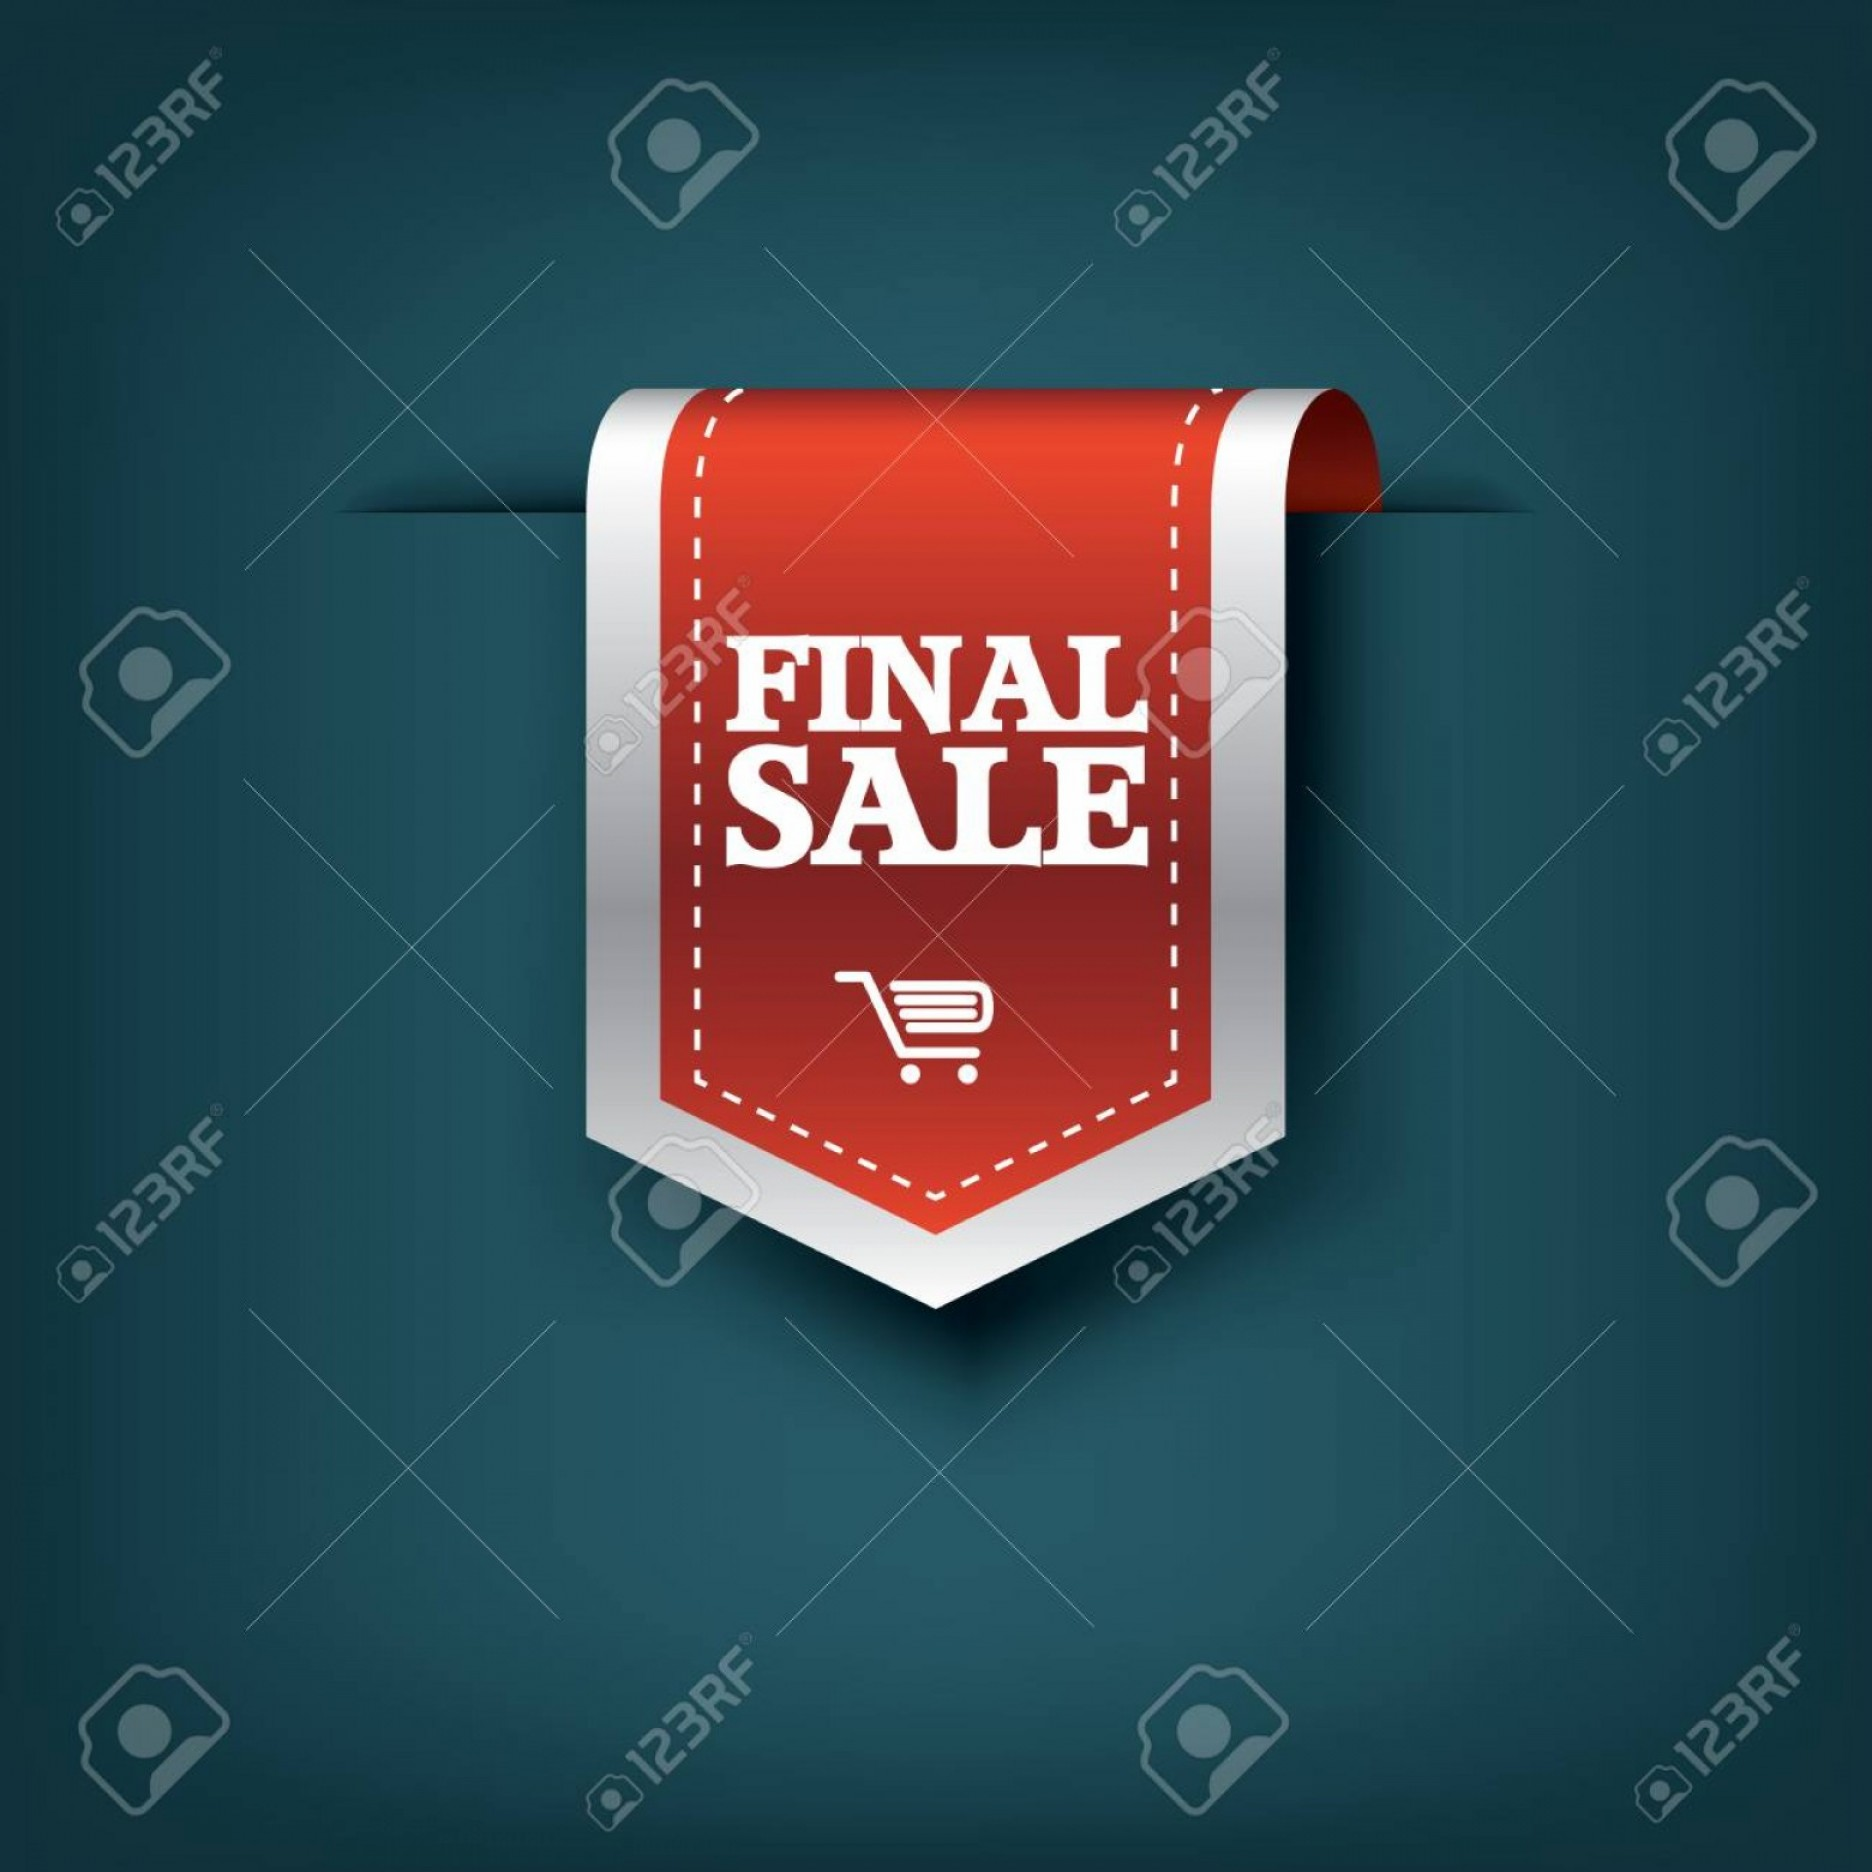 Cross And Ribbon Vector: Photostock Vector Final Sale Red Ribbon Vector Tag Icon For Product Promotion And Shopping Bookmark D Design With Rea